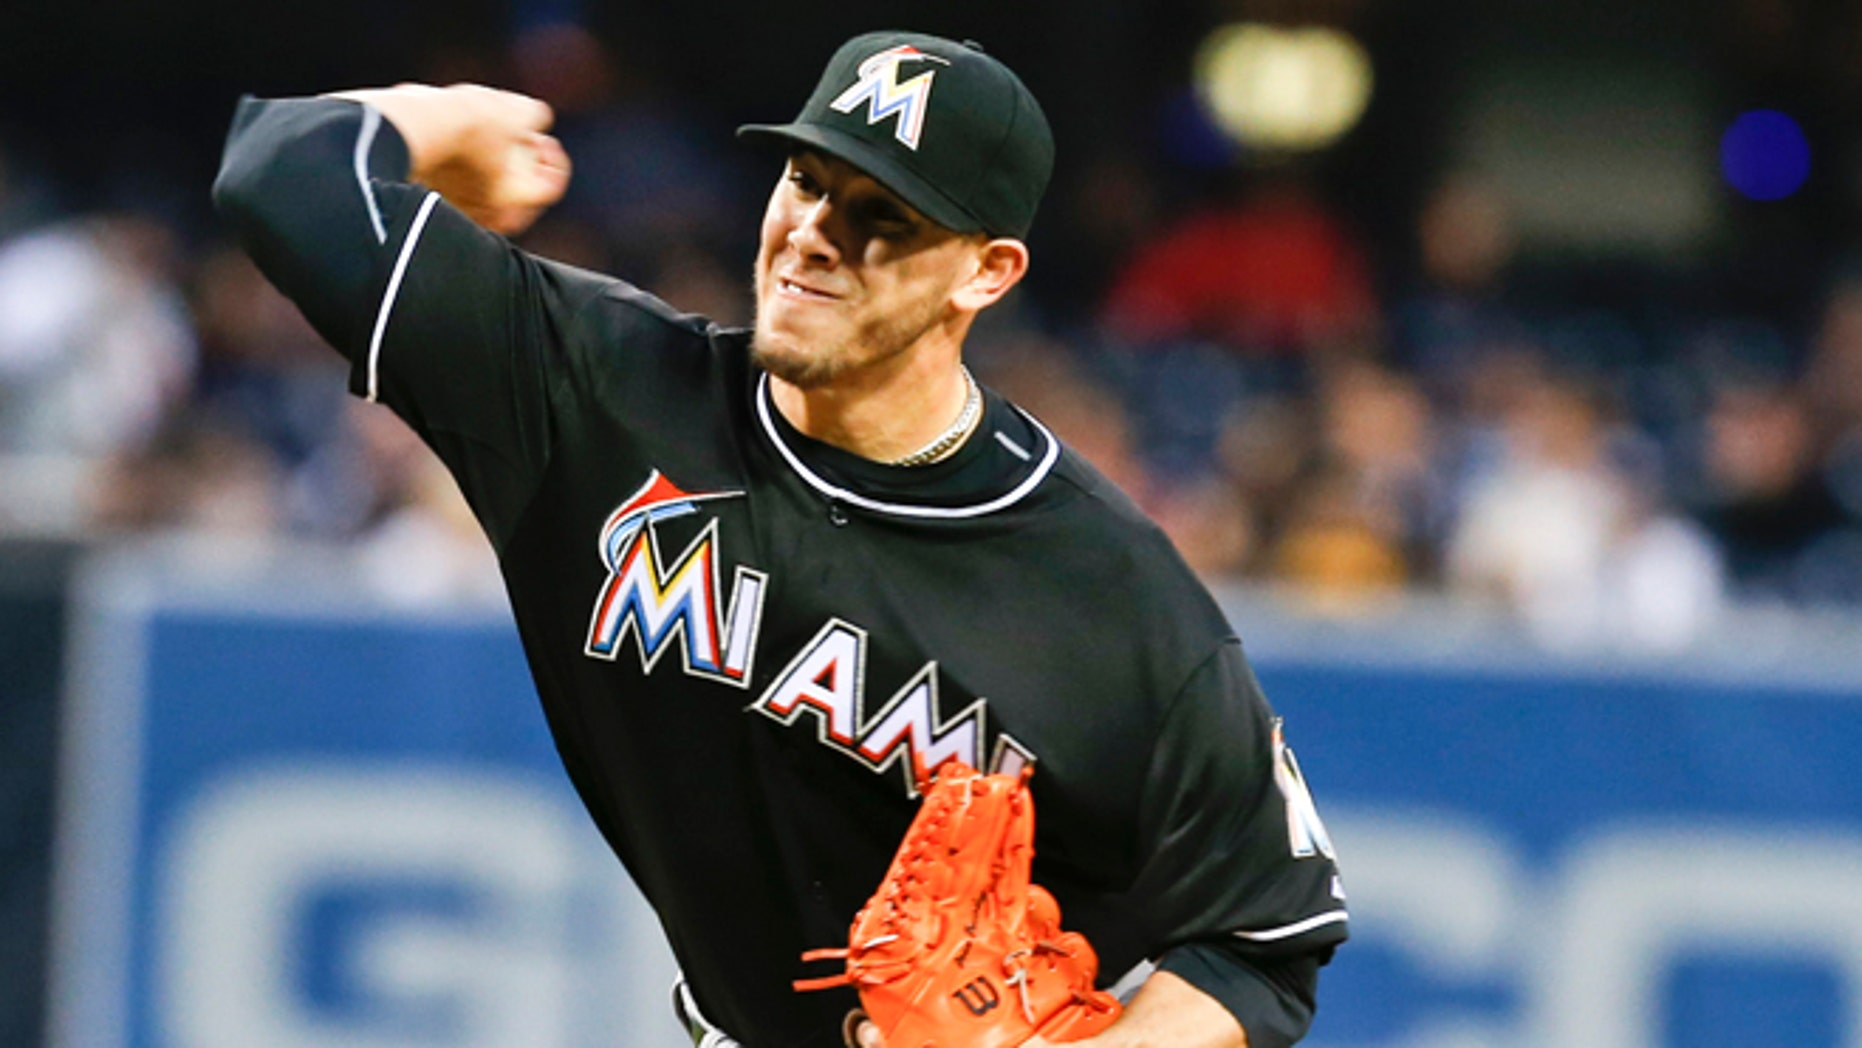 Miami Marlins starting pitcher Jose Fernandez works the first inning against the San Diego Padres during a baseball game on Friday, May 9, 2014, in San Diego.  (AP Photo/Lenny Ignelzi)